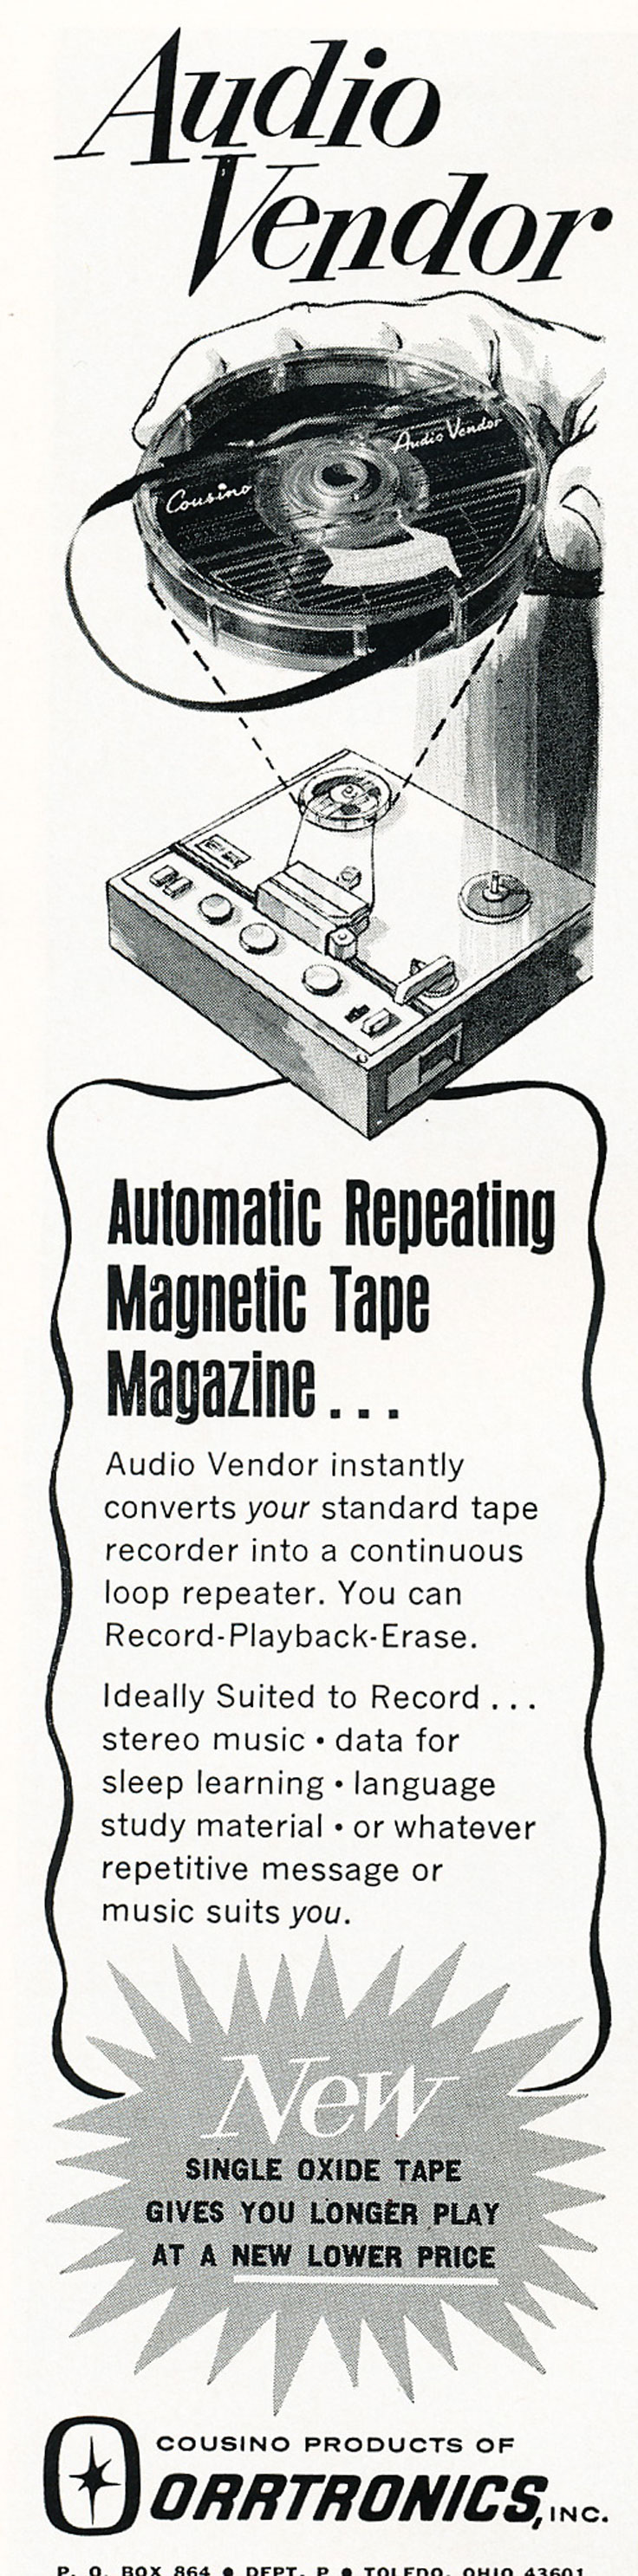 1967 ad for Orrtronics in Reel2ReelTexas.com's vintage recording collection